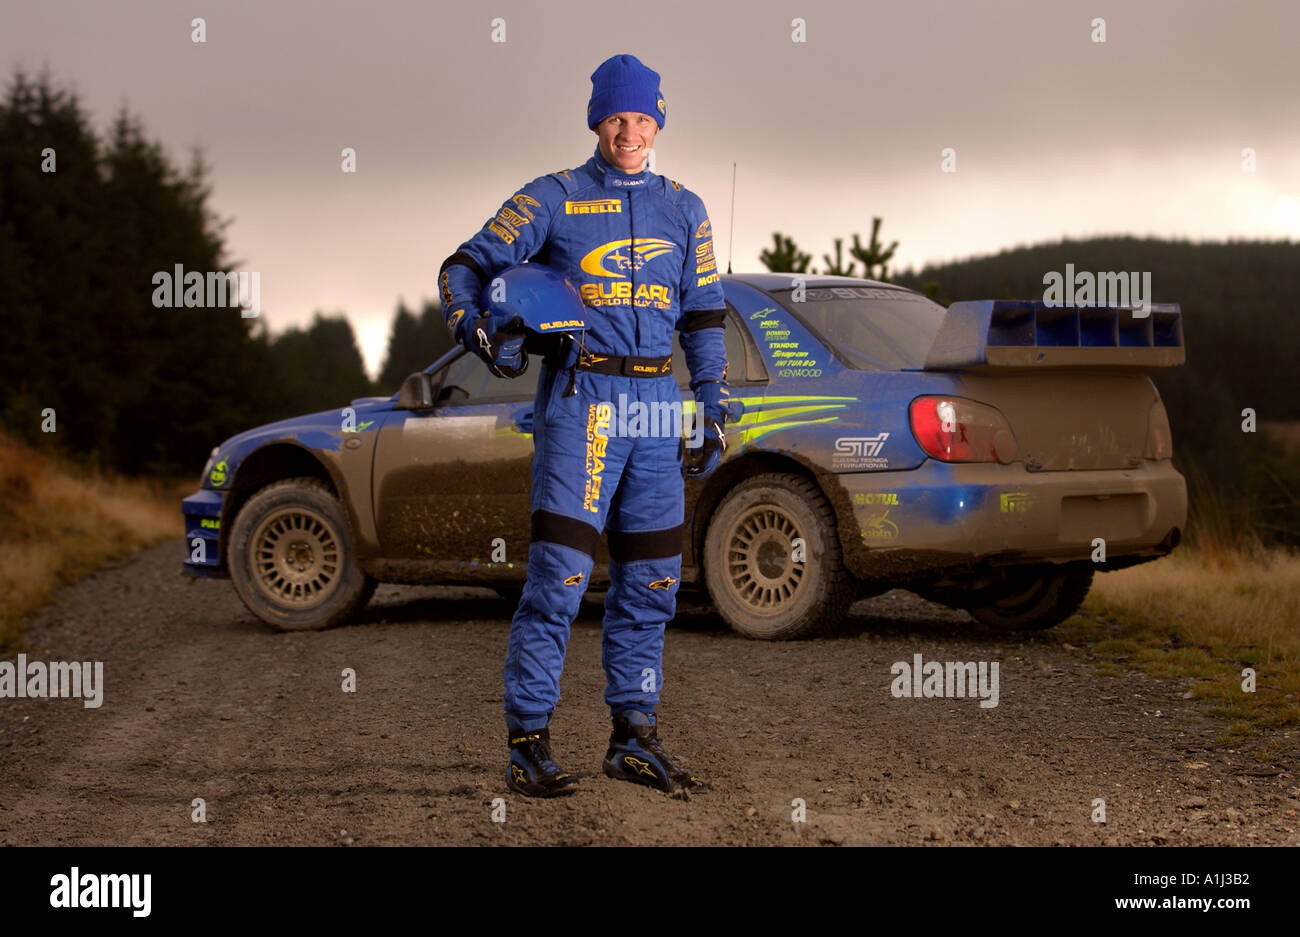 SUBARU RALLY DRIVER PETTER SOLBERG DURING TESTING IN WALES BEFORE THE RALLY OF BRITAIN UK - Stock Image